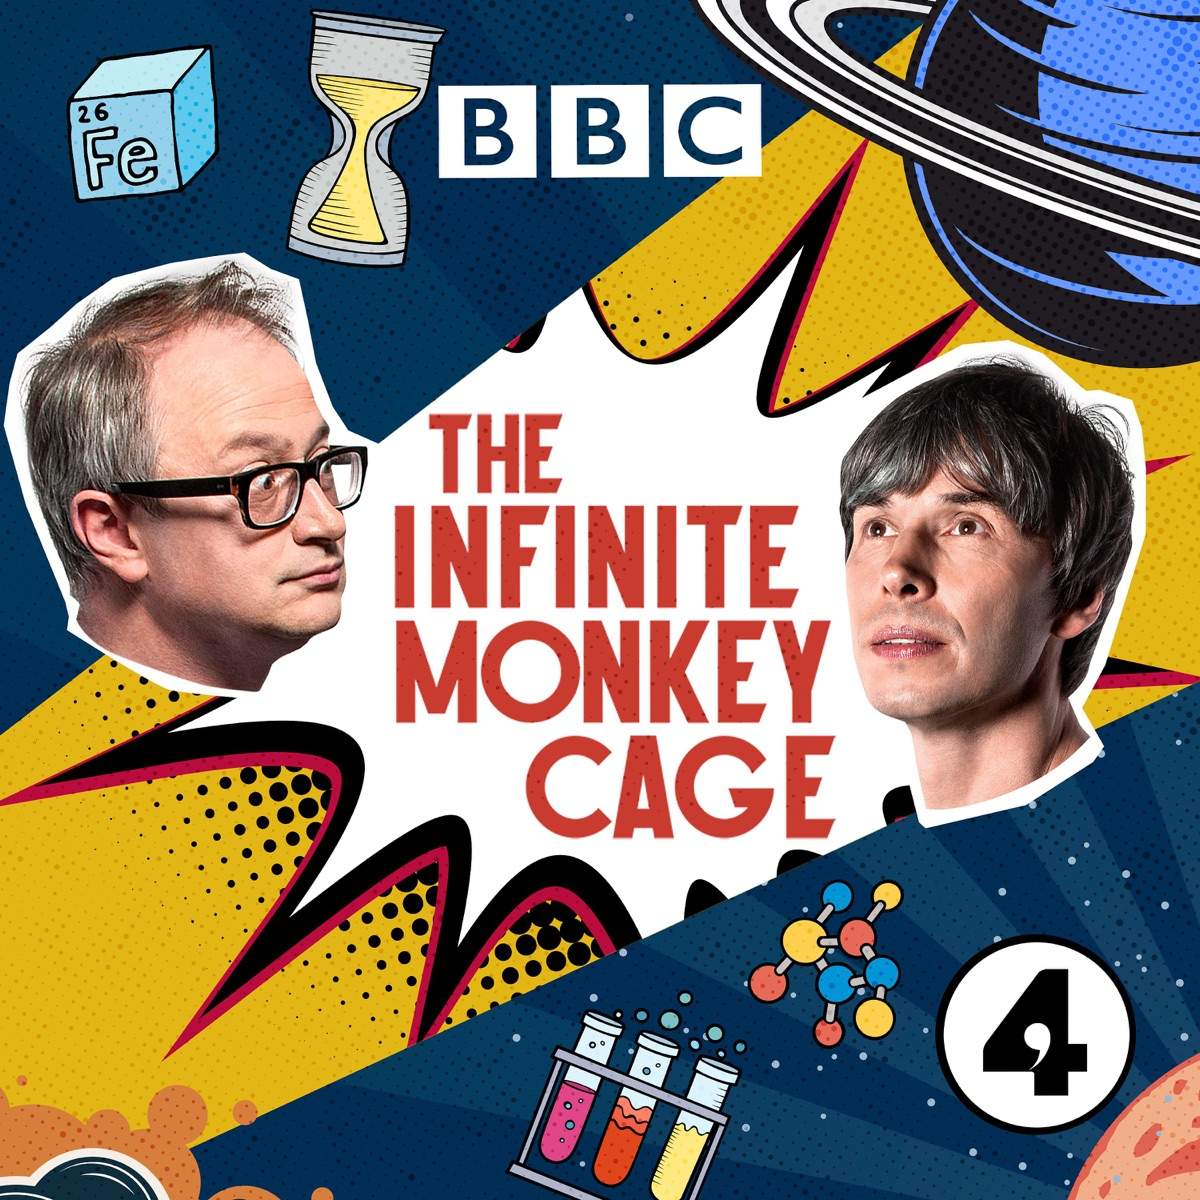 Introducing Robin Ince's Laws That Aren't Laws